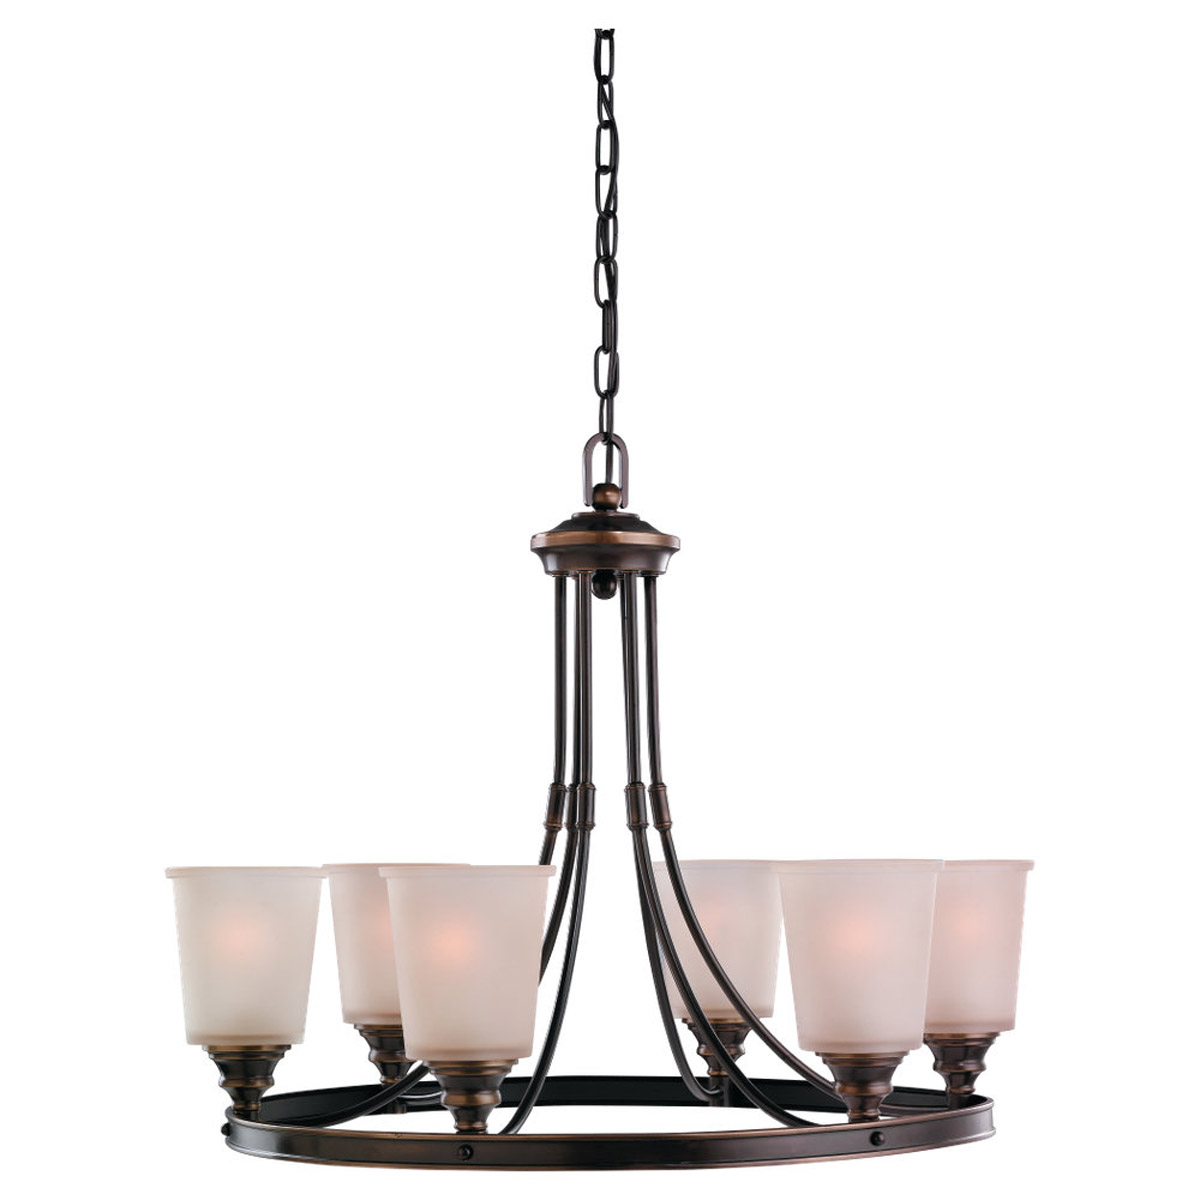 Sea Gull Lighting Warwick 6 Light Chandelier in Vintage Bronze 31331-825